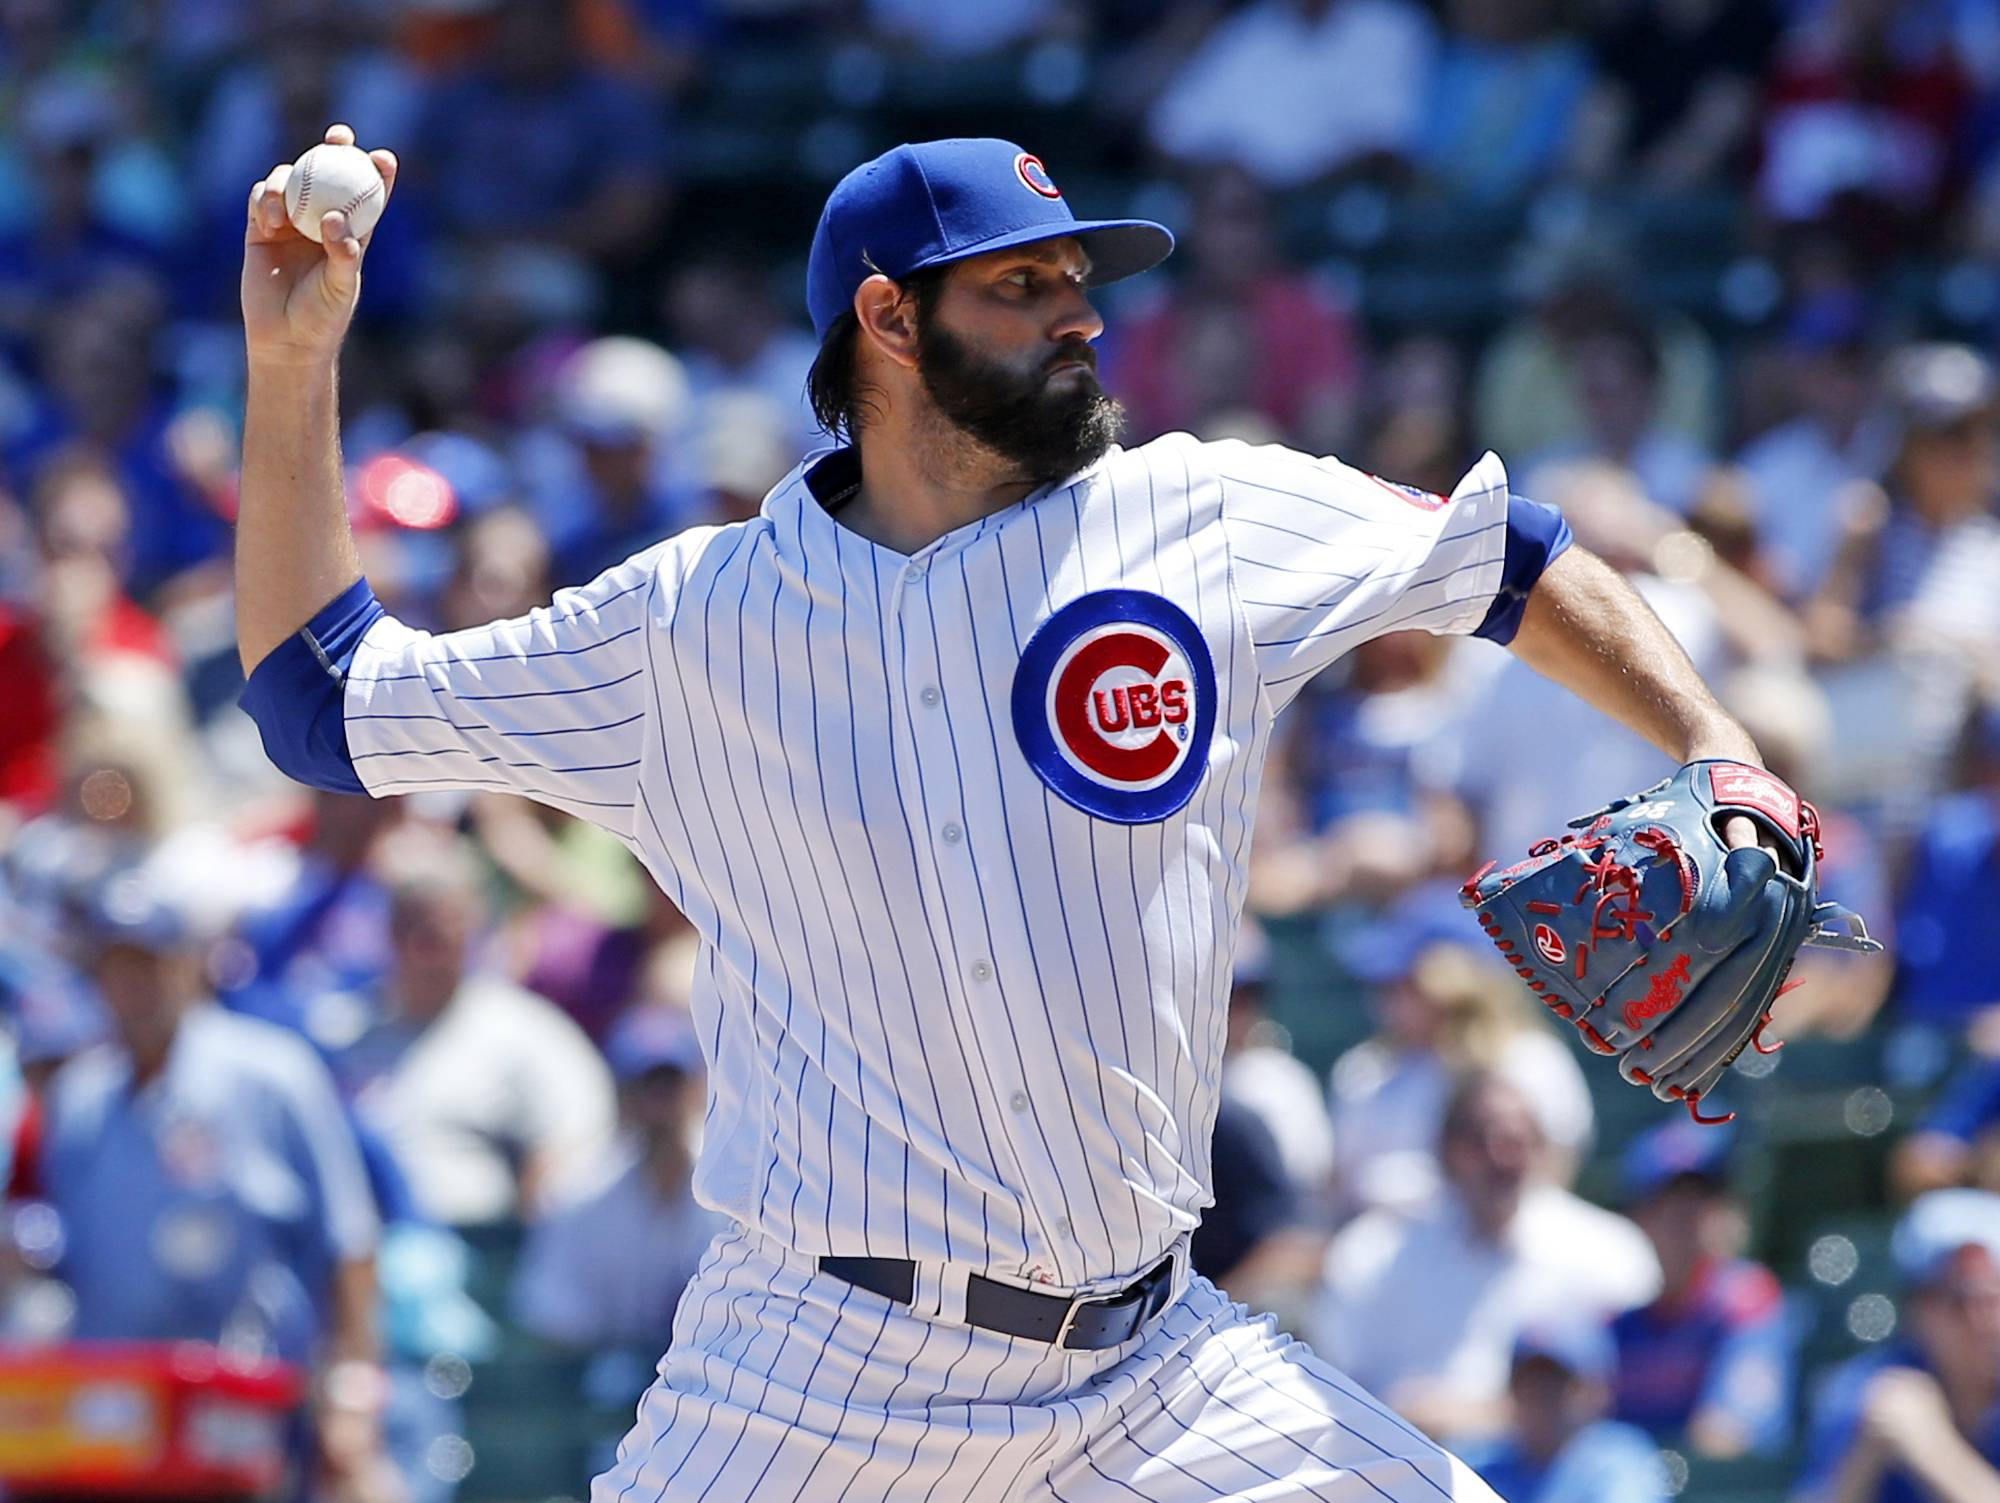 Jason Hammel pitched 6 solid innings Saturday, and the Cubs defeated the Texas Rangers 3-1 at Wrigley Field. It was the Cubs' third straight victory as they improved to 55-35.